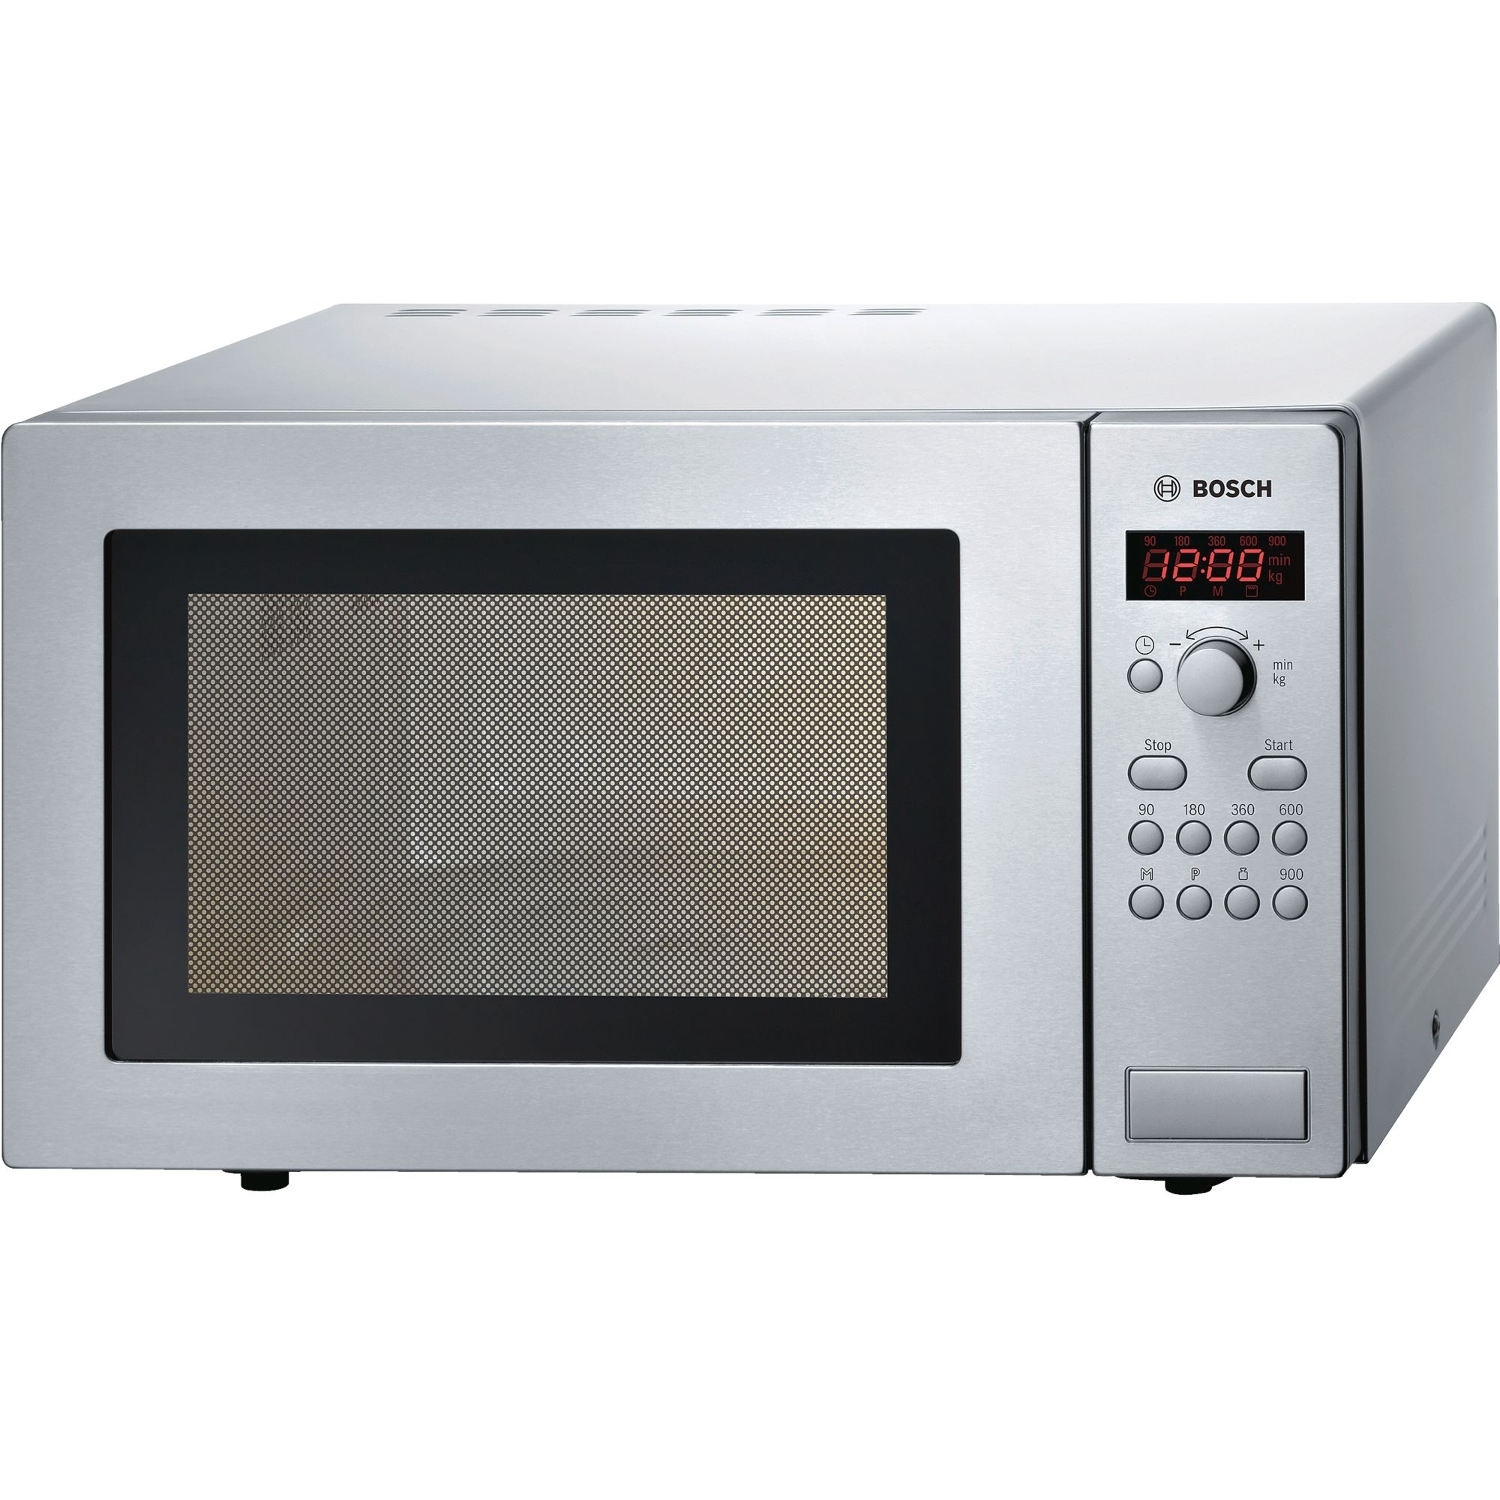 Bosch 25 Litre Microwave - Brushed Steel - 0